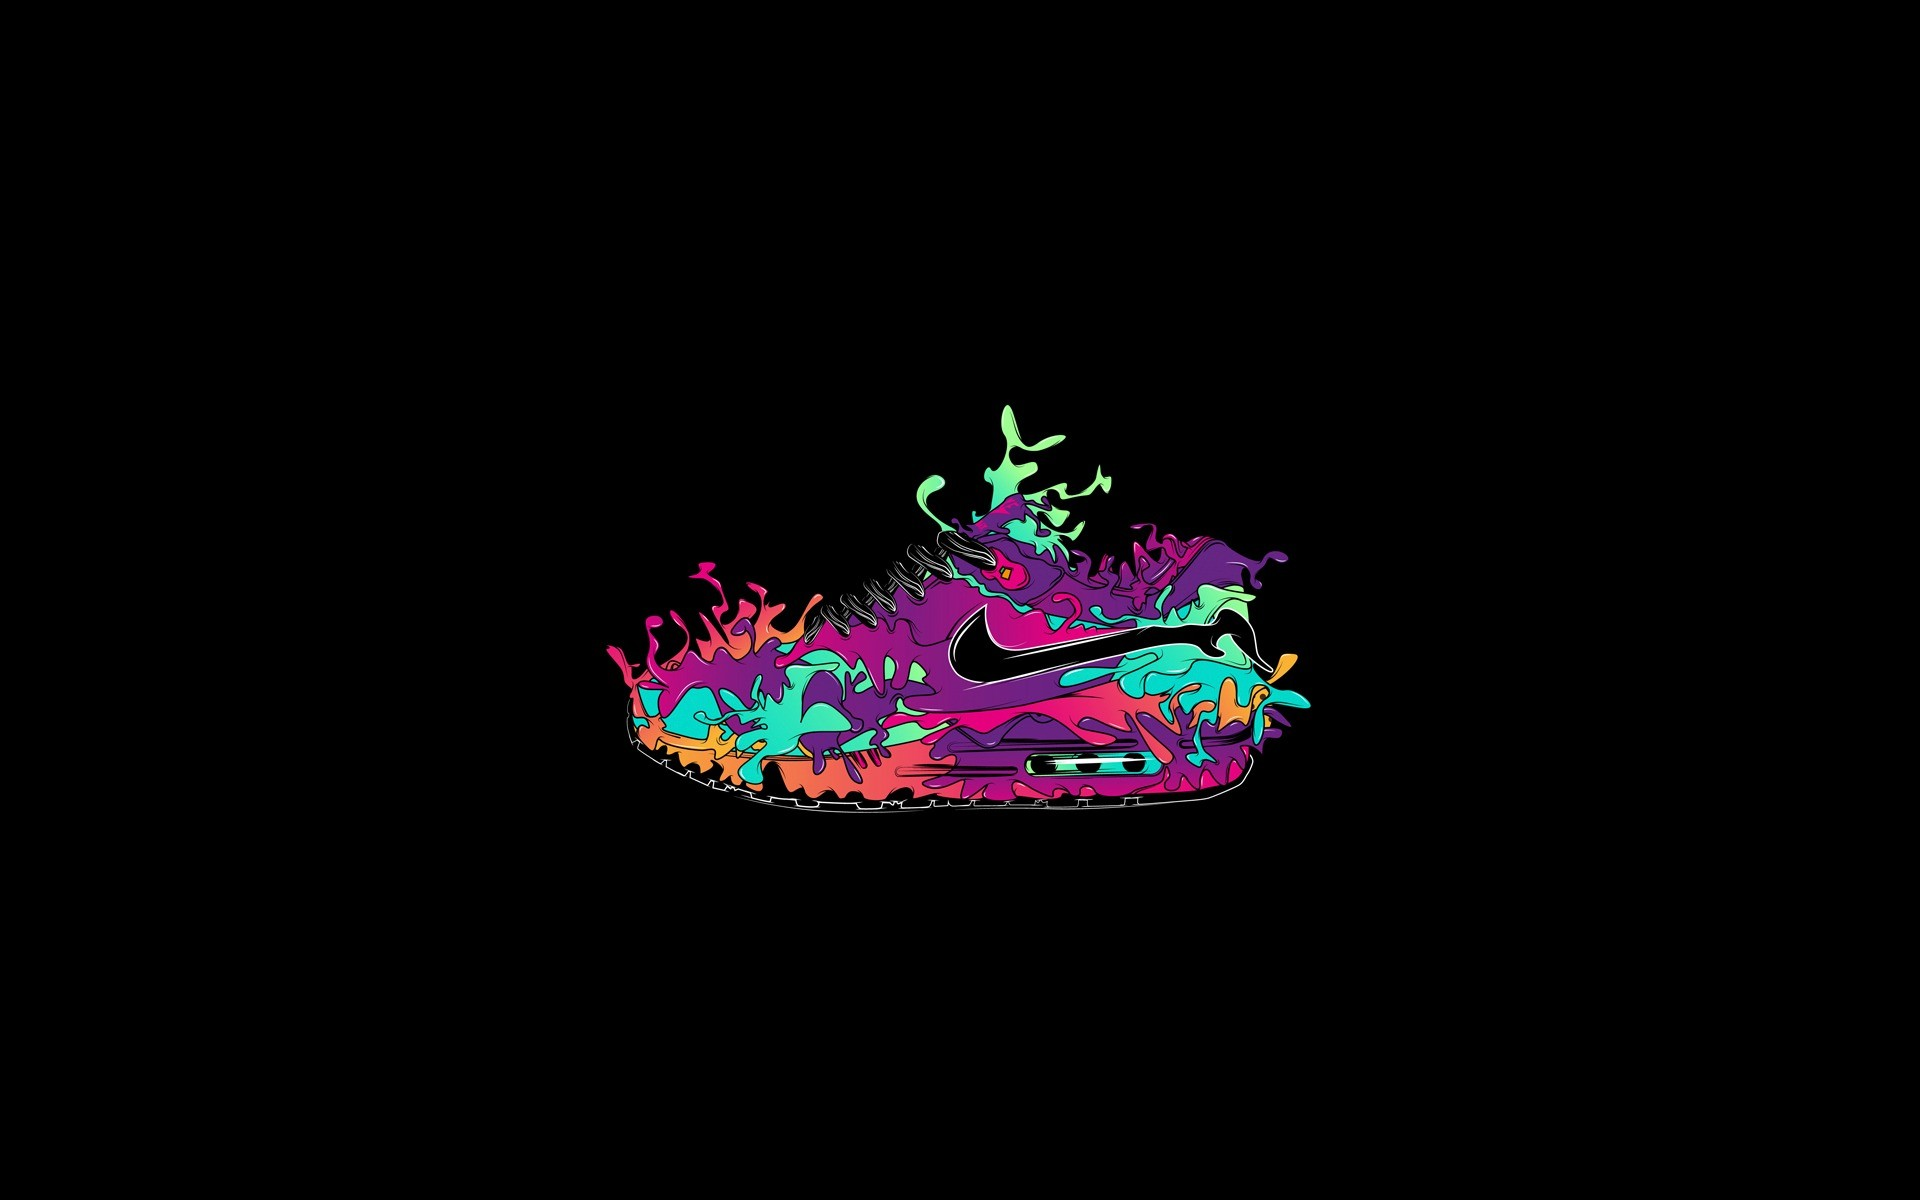 dope nike wallpaper (79+ images)